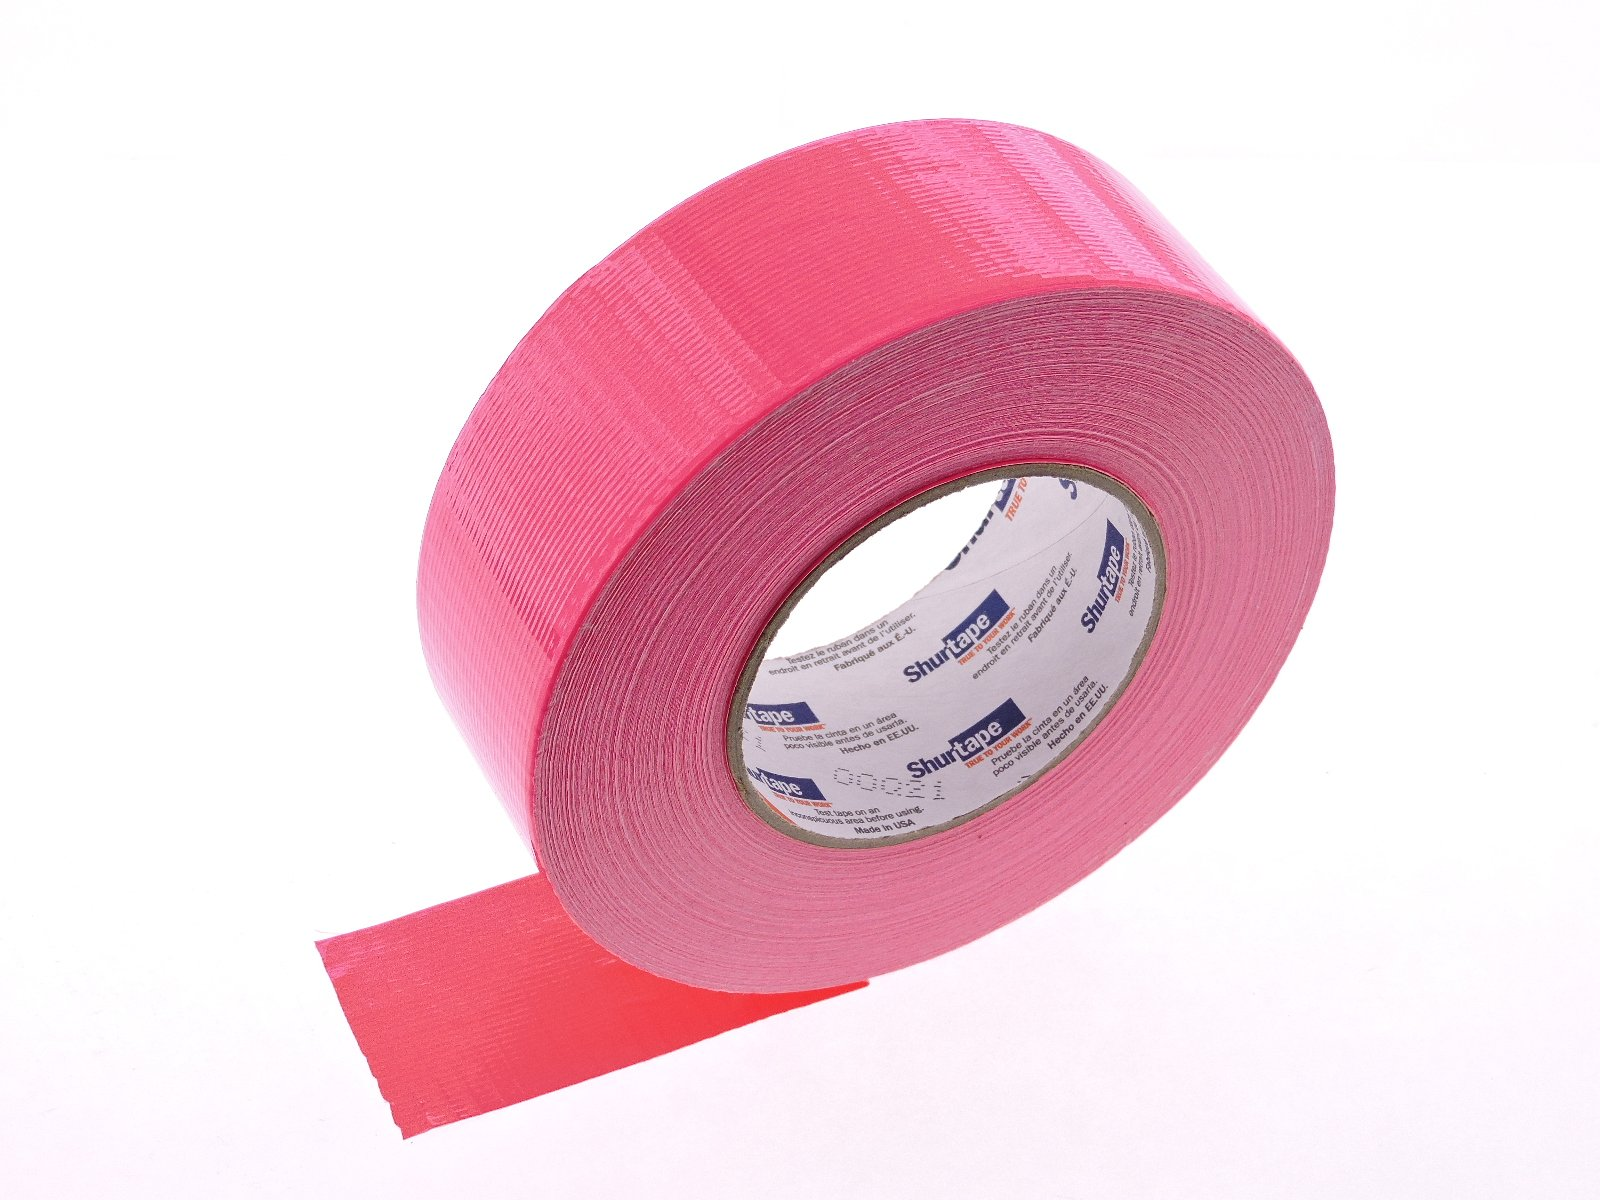 PC-619 Shurtape 2'' Pink Bright Fluorescent Magenta Neon Colored 9 Mil Cloth Duct Tape Water UV Tear Resistant 60yd USA Made Colors High Visibility Safety Warning Marking